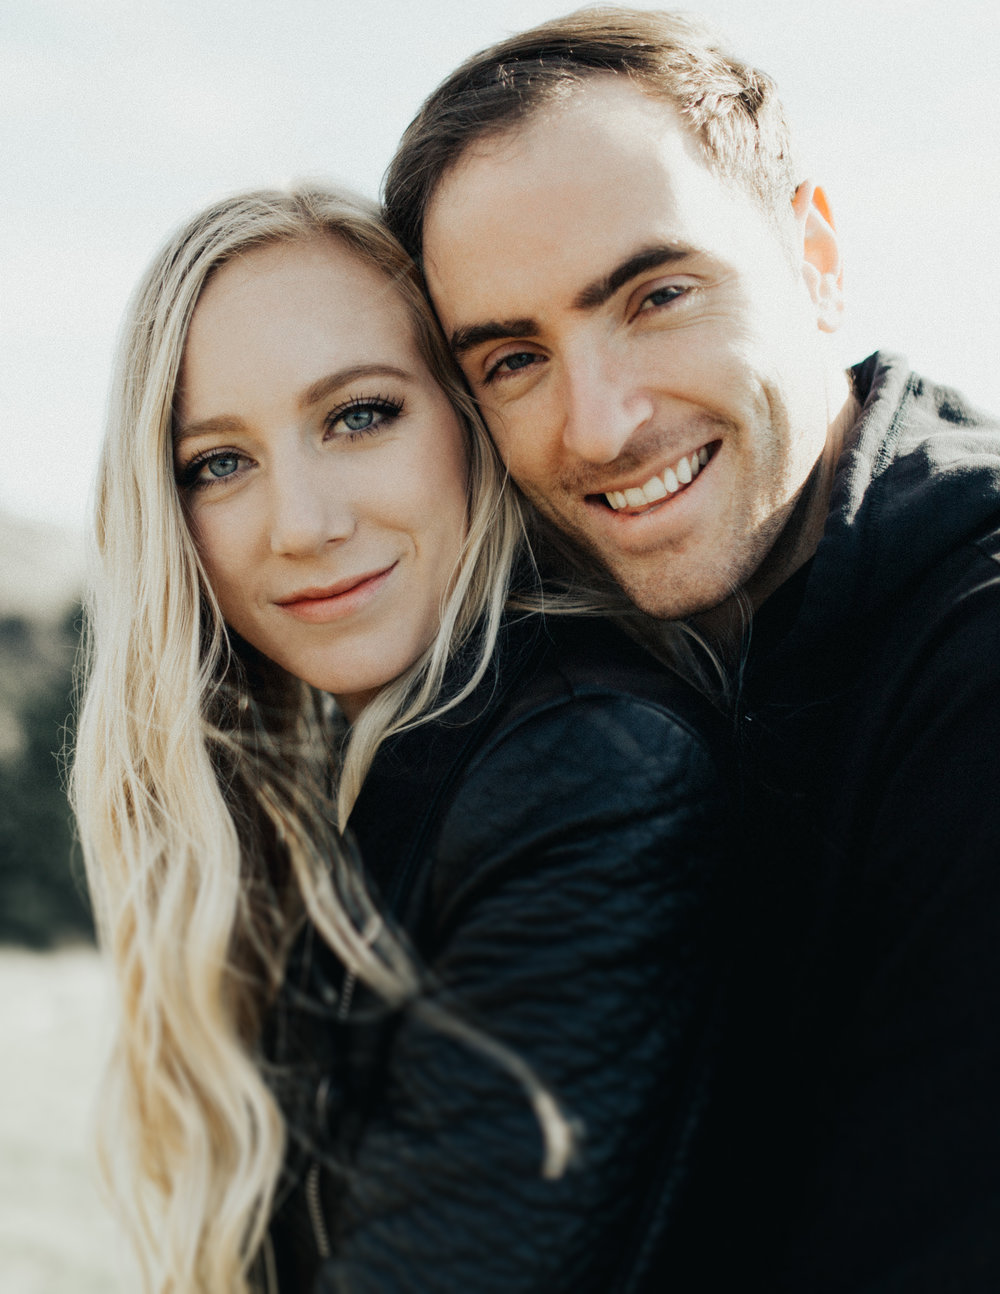 Elise + Logan Engagements in San Francisco